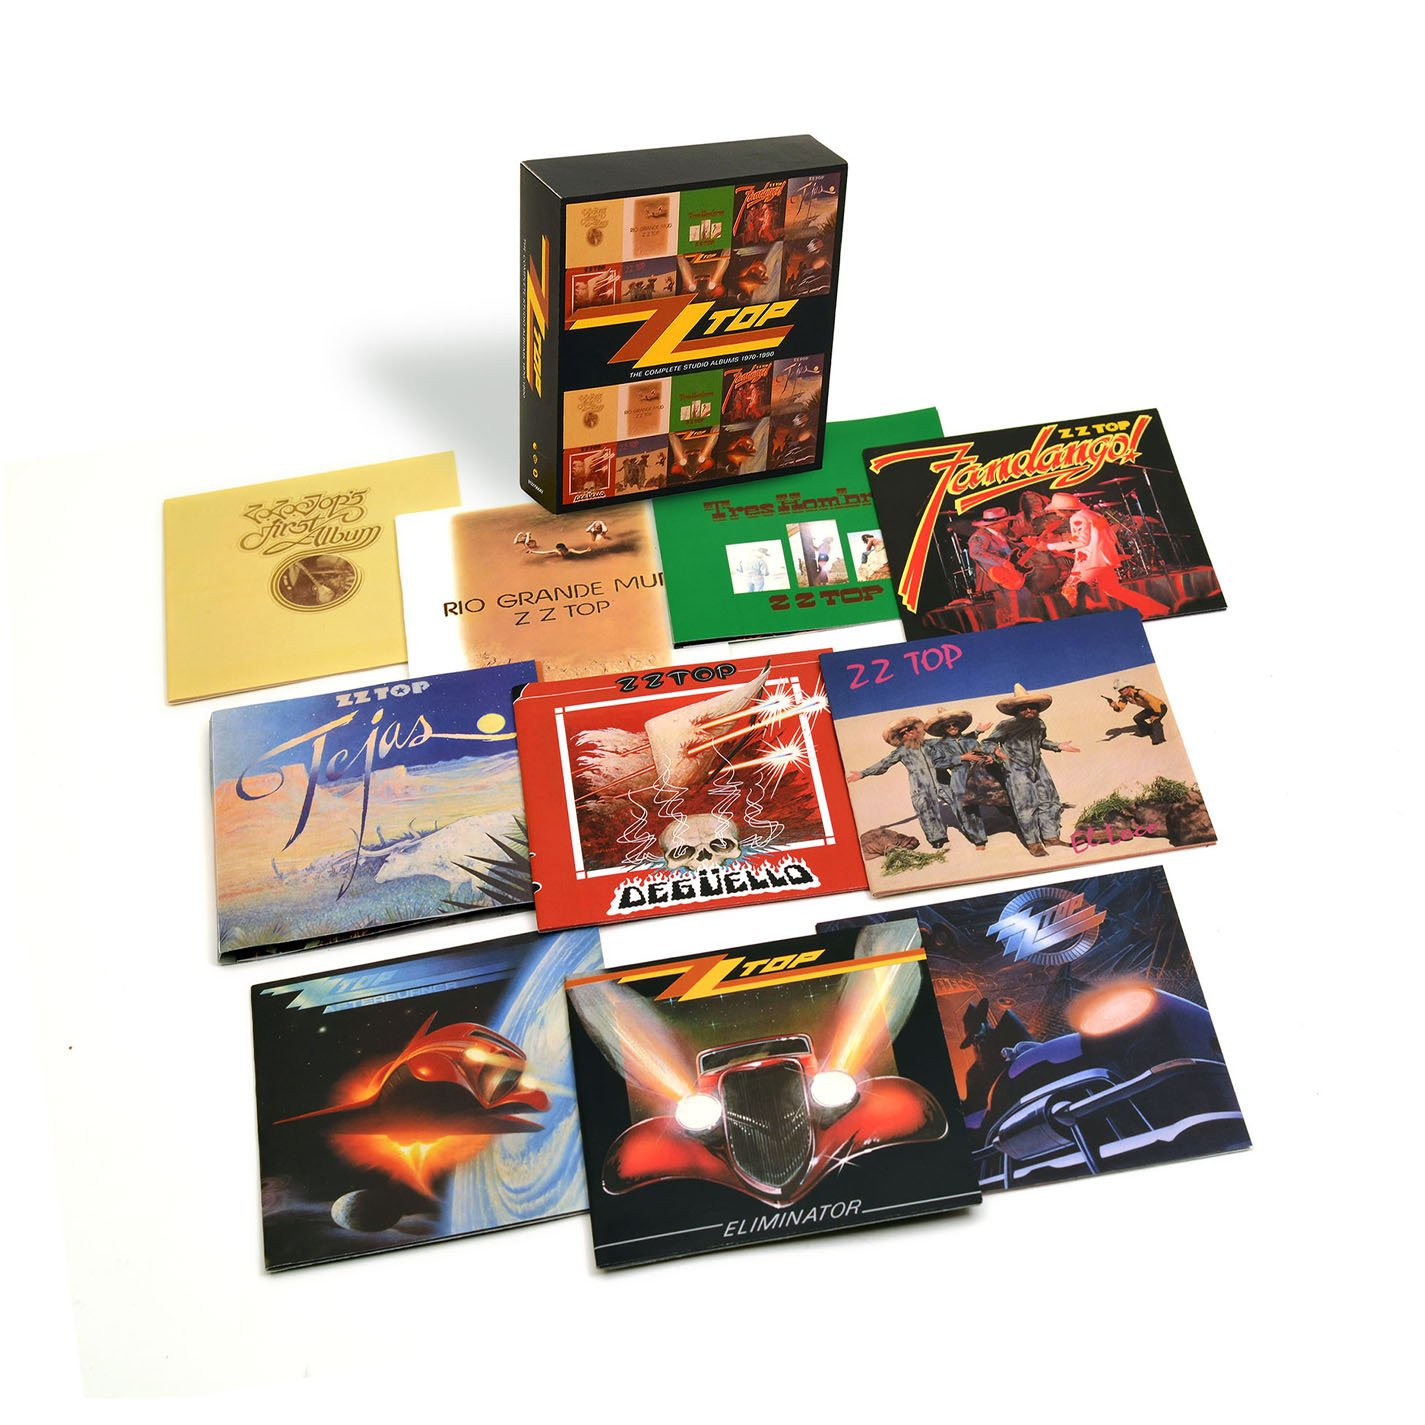 ZZ Top - The Complete Studio Albums 1970-1990 (10 CD) - Amazon.com Music